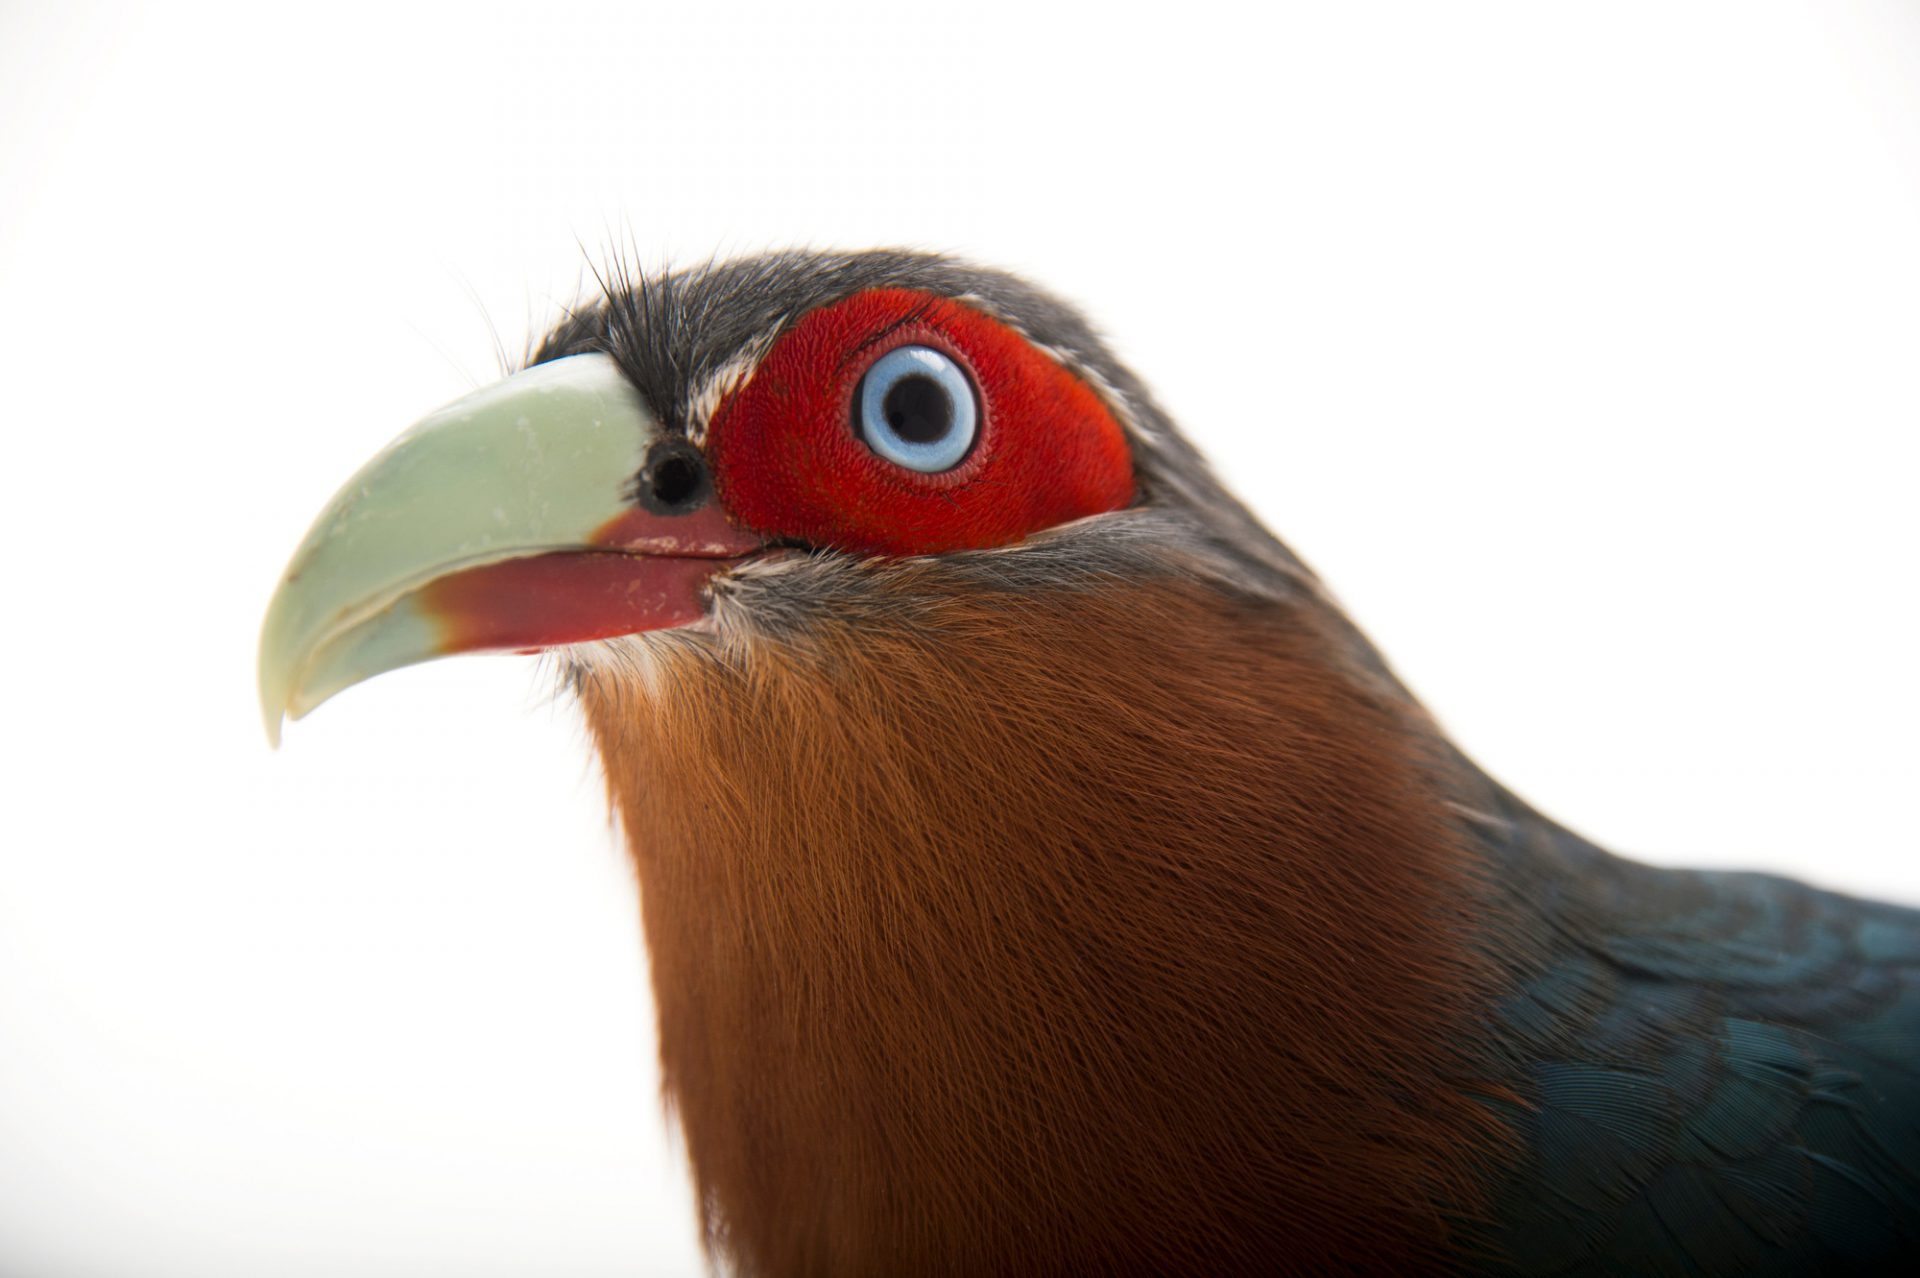 Picture of a chestnut-breasted malkoha (Phaenicophaeus curvirostris singularis) at the Houston Zoo.